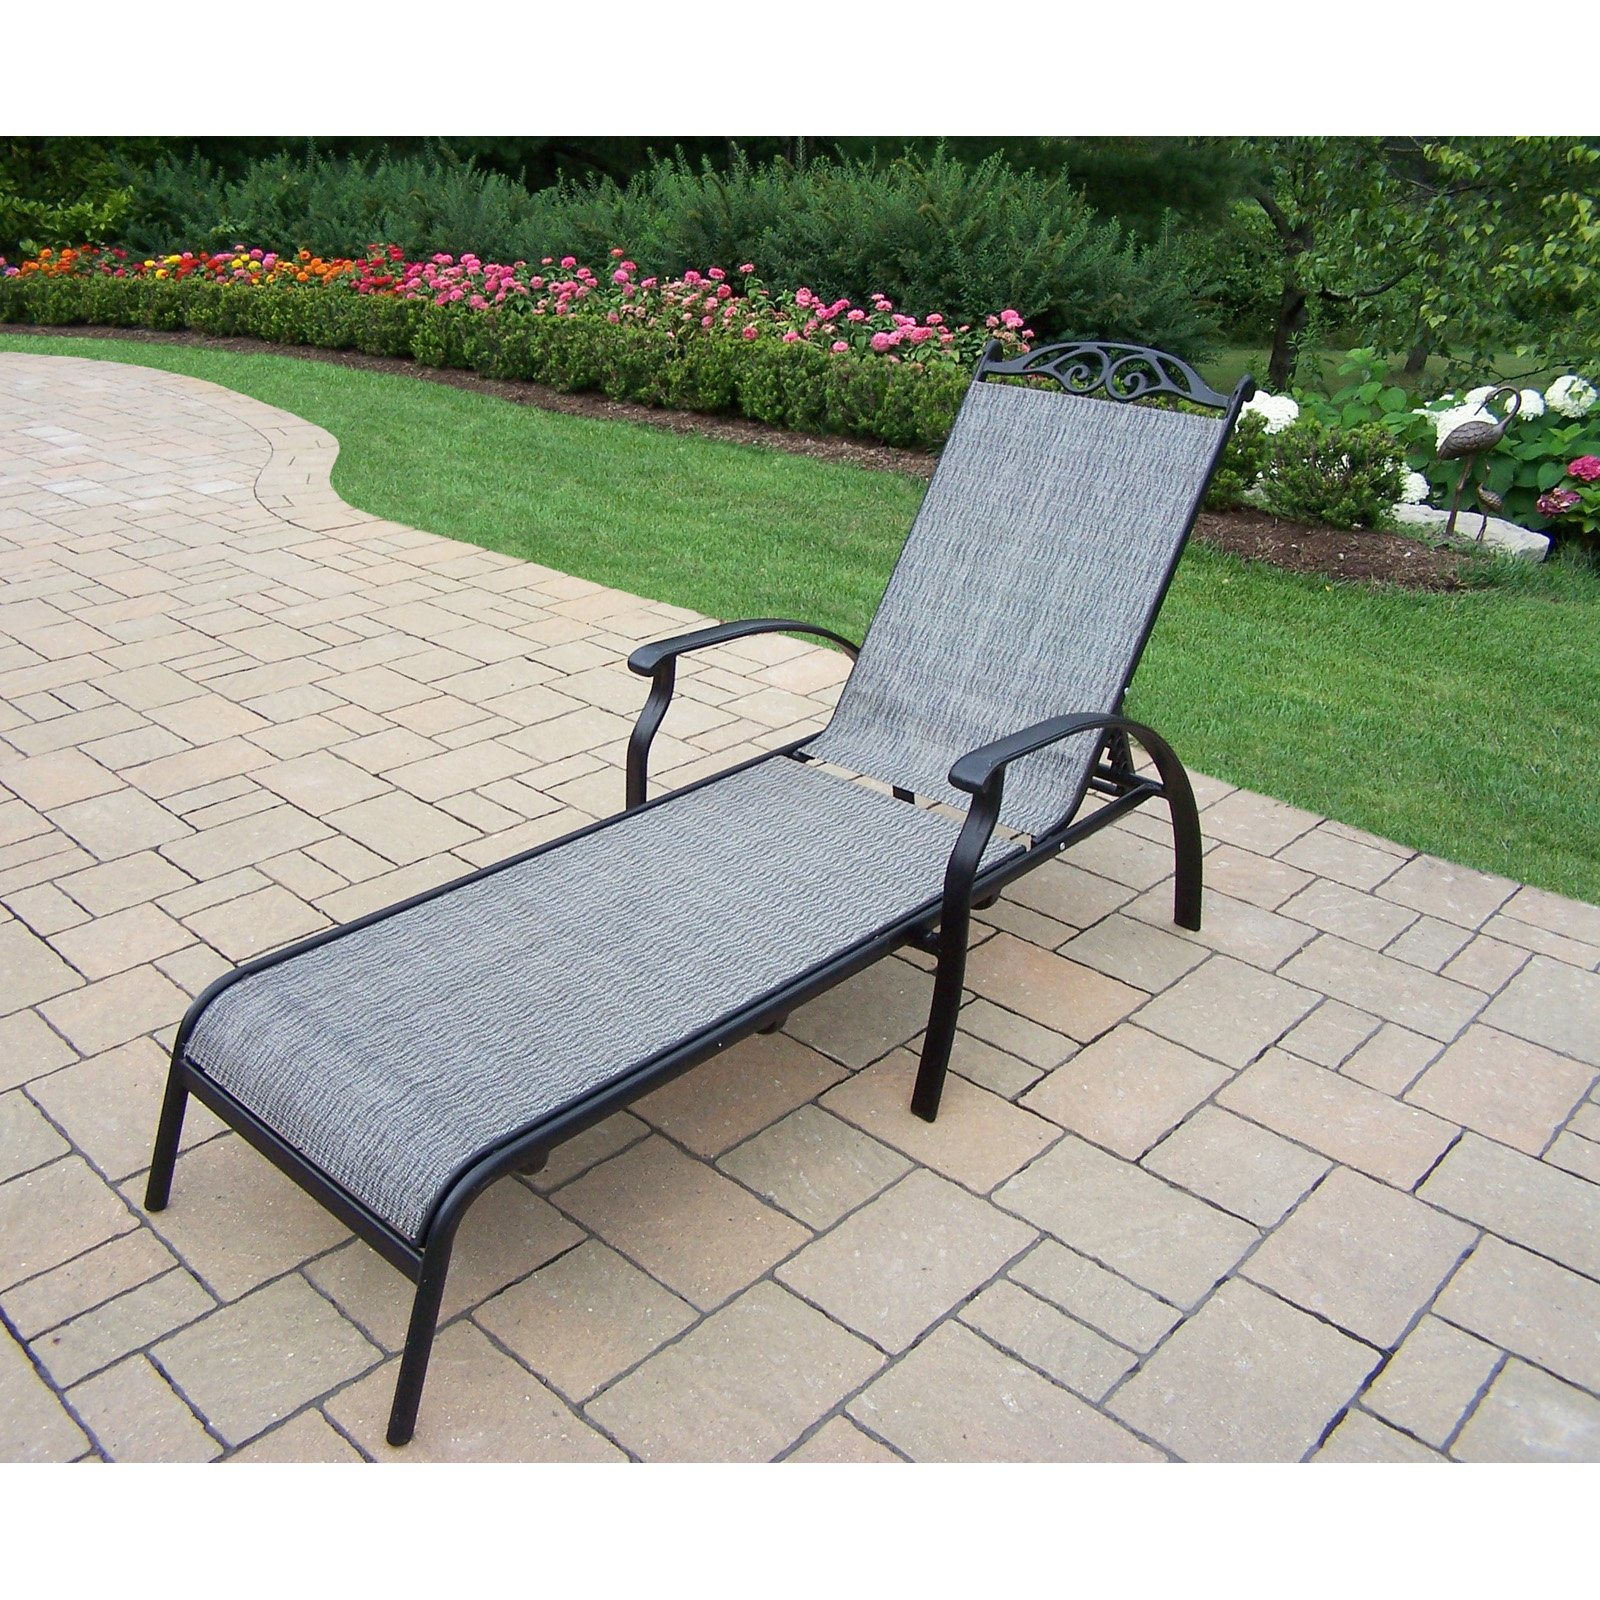 Oakland Living Cascade Aluminum Foldable Outdoor Chaise Lounge